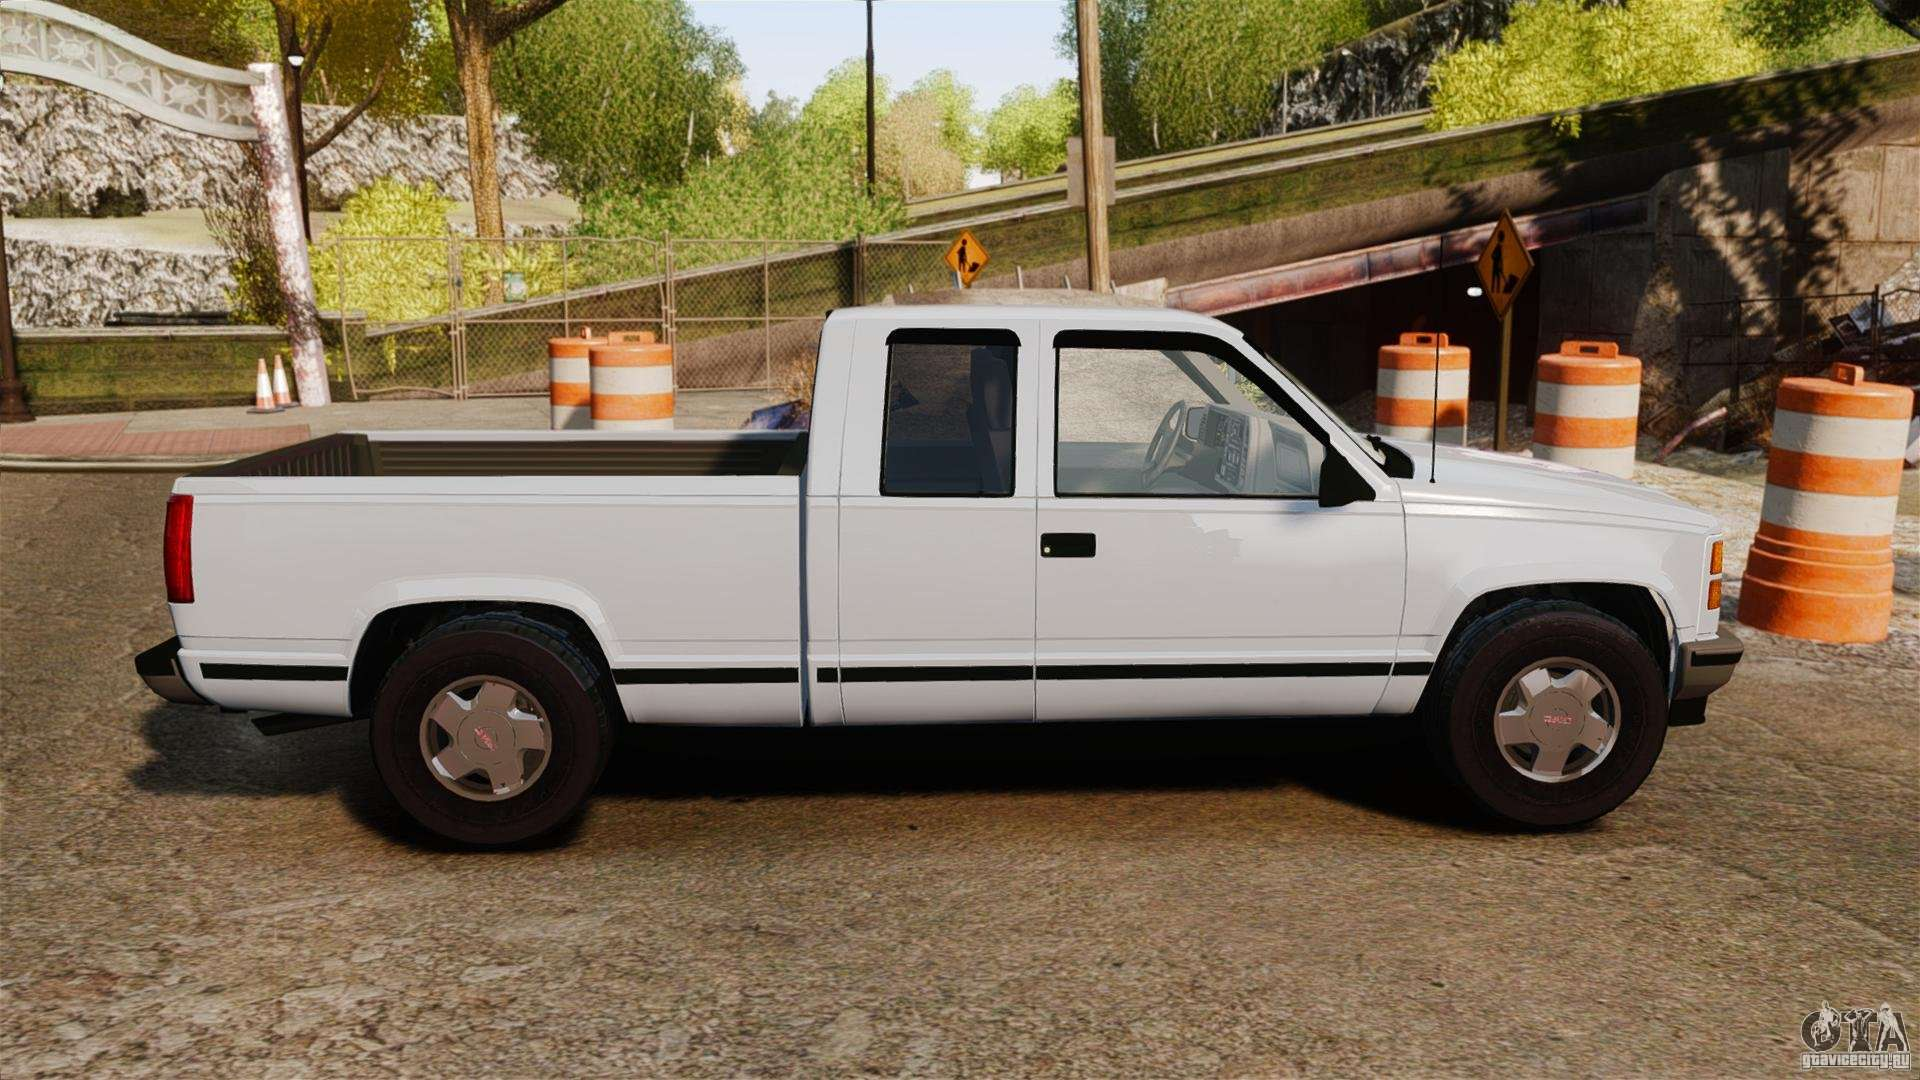 24862 Gmc Sierra 1994 furthermore Watch likewise 3738 2003 Gmc Sierra 2500hd 2 together with Fastest motorhome Fiat Doblo breaks Guinness World Records record 214117 also 5915493938. on gmc 2500hd